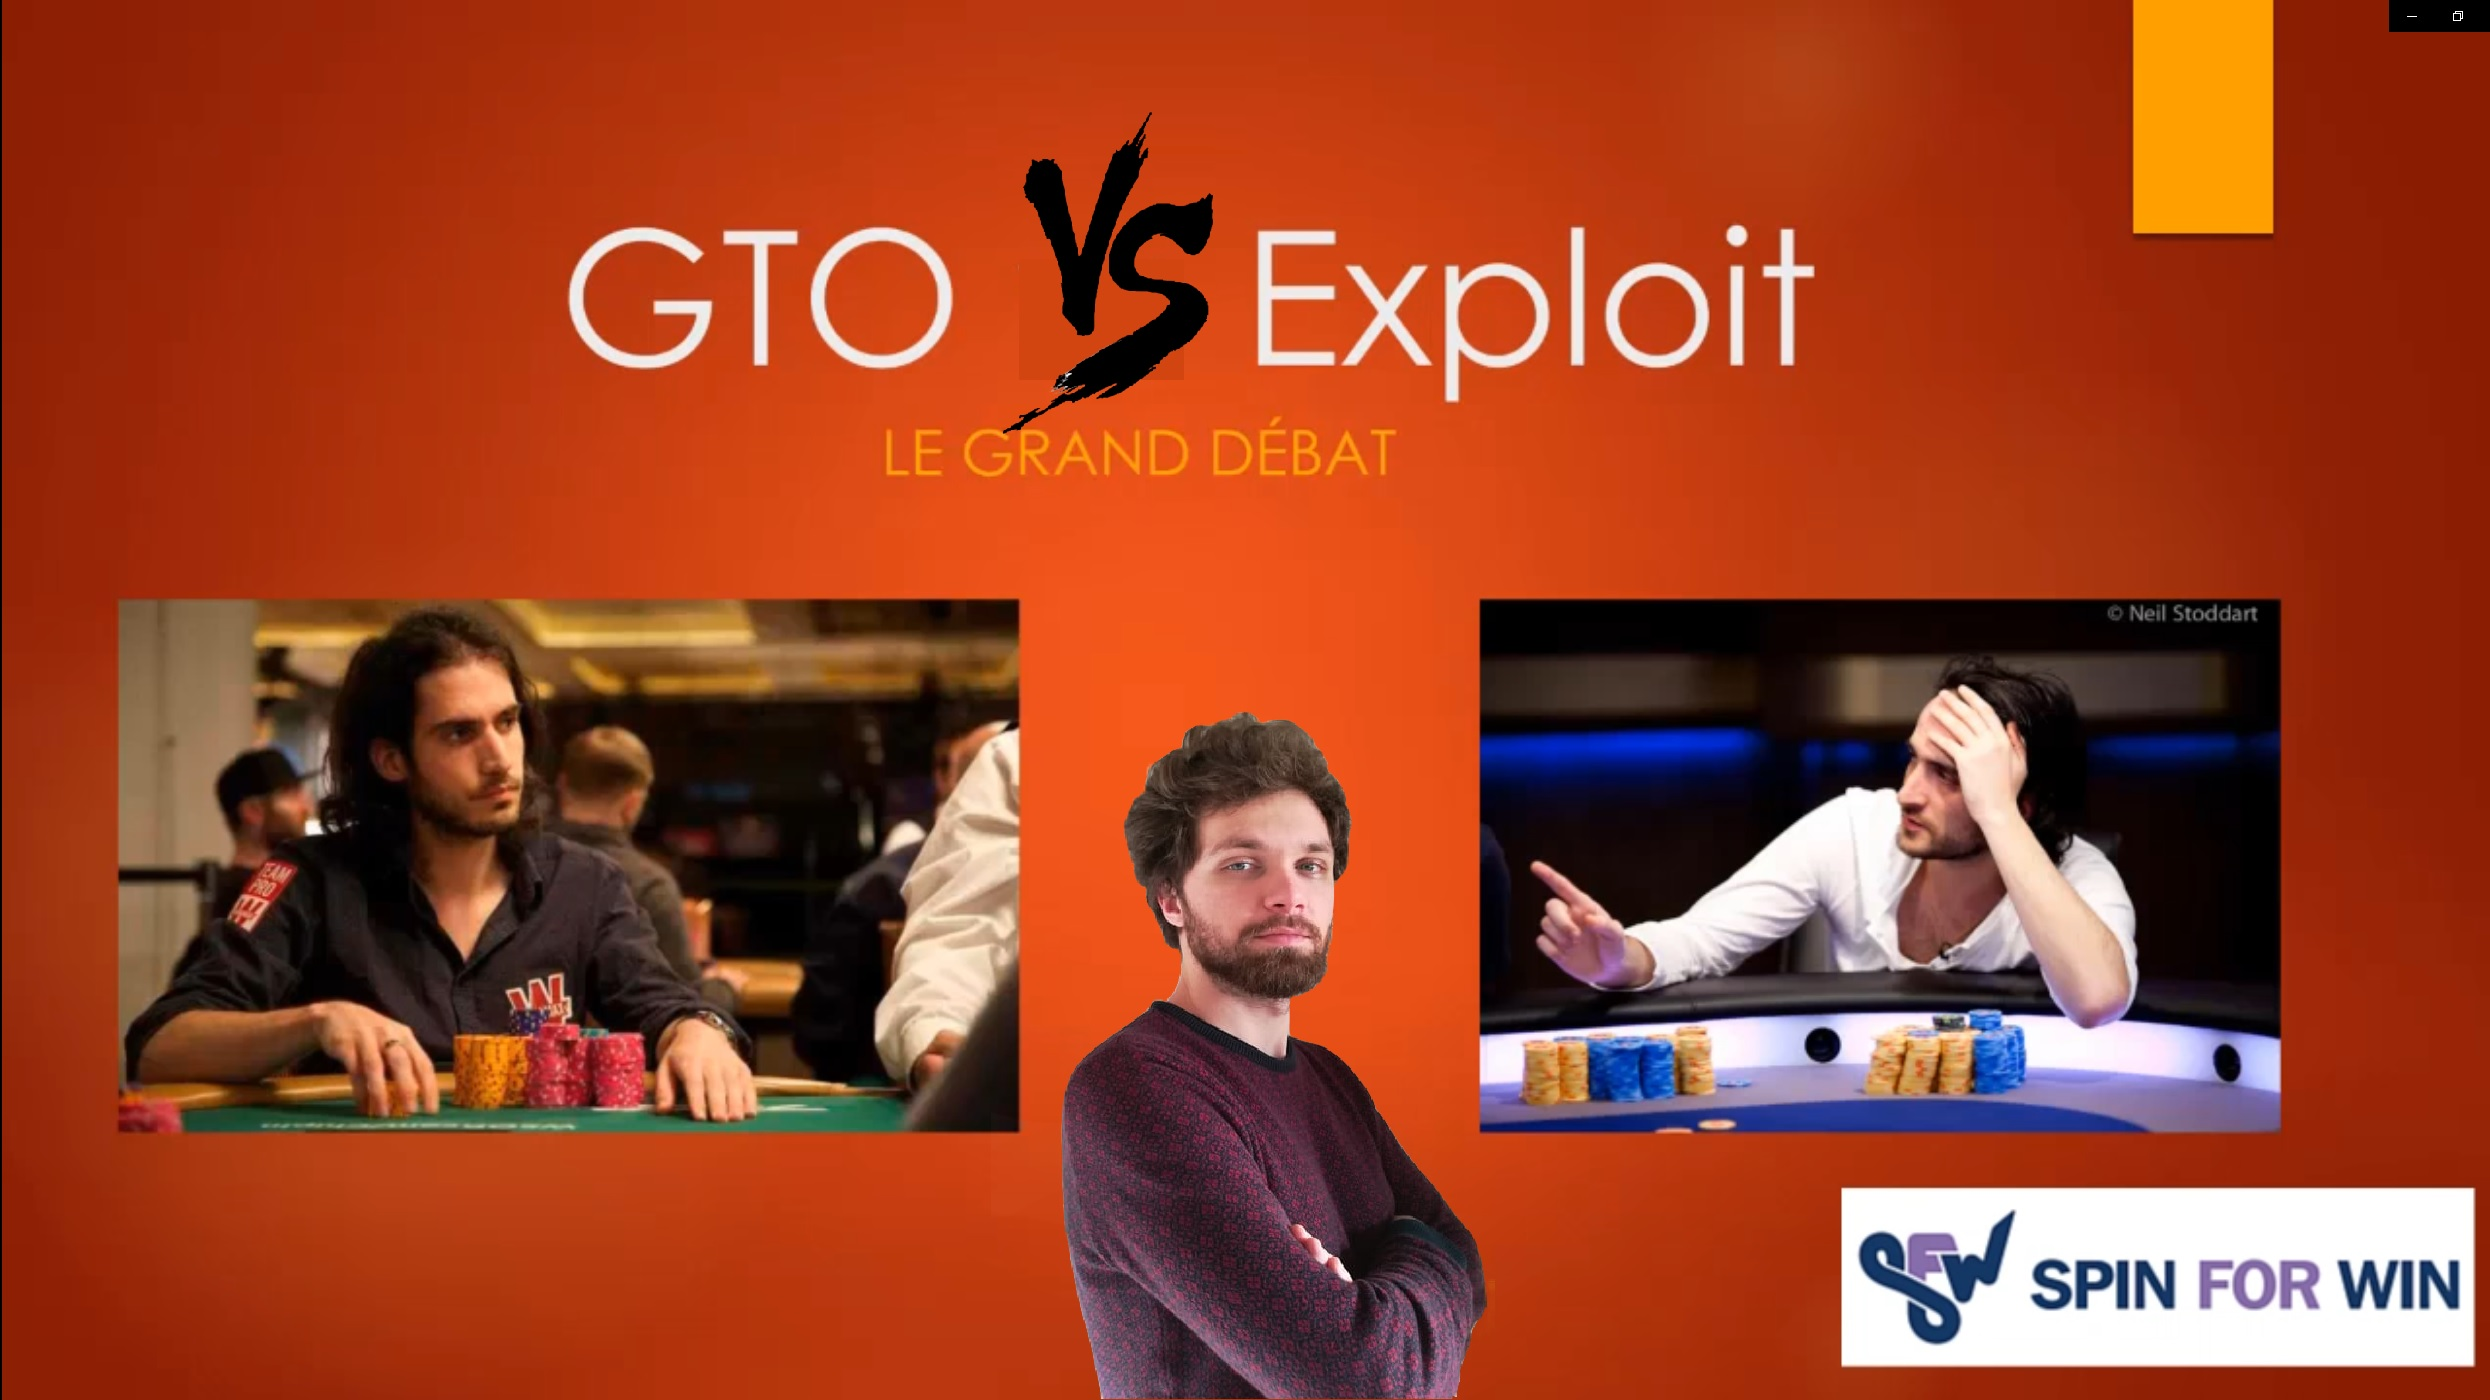 GTO VS Exploit : Le grand débat